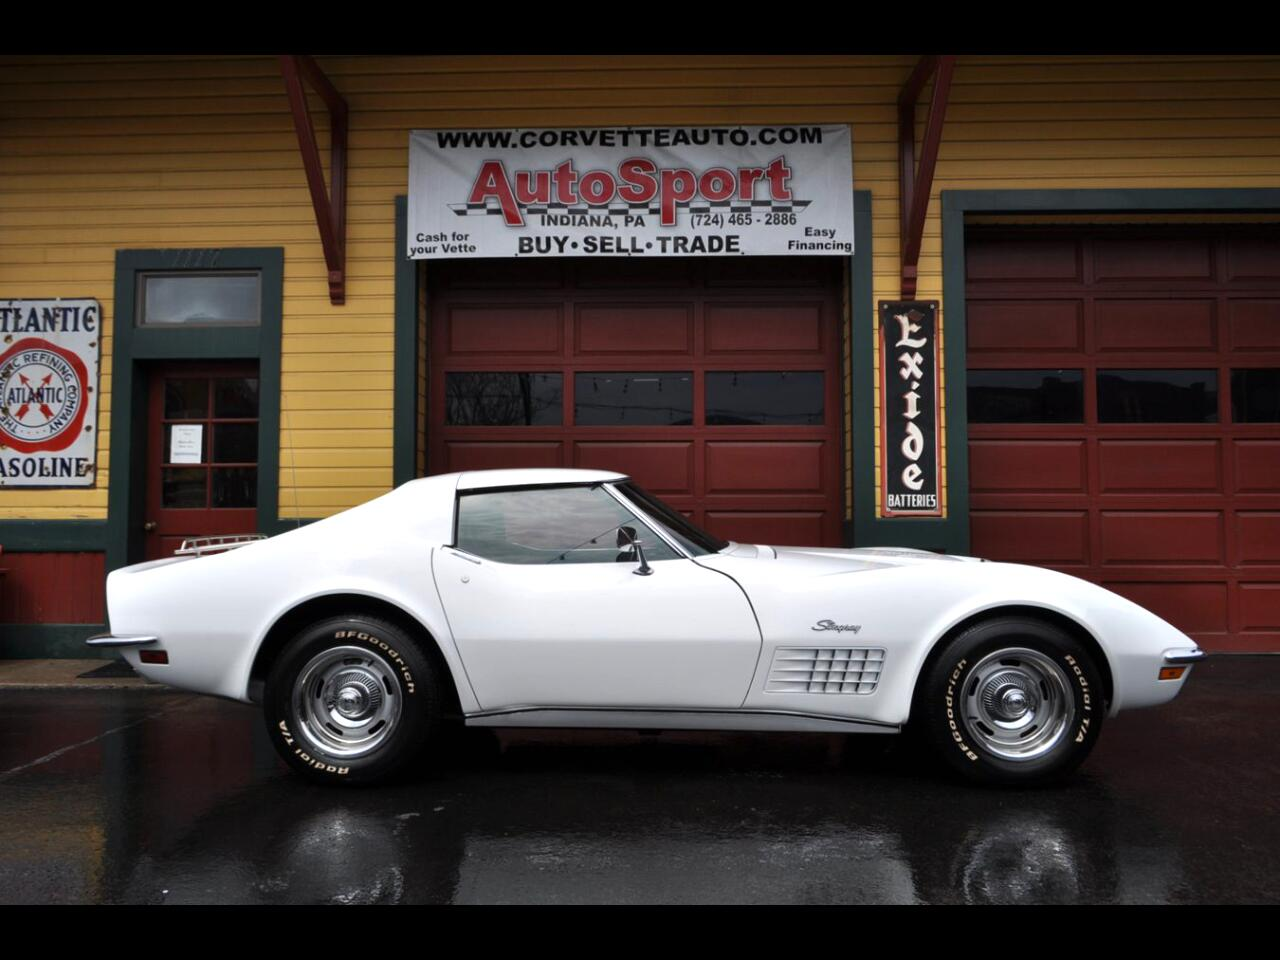 1972 Chevrolet Corvette 1972 #'s Matching 454 4sp AC PS PB PW Leather Full